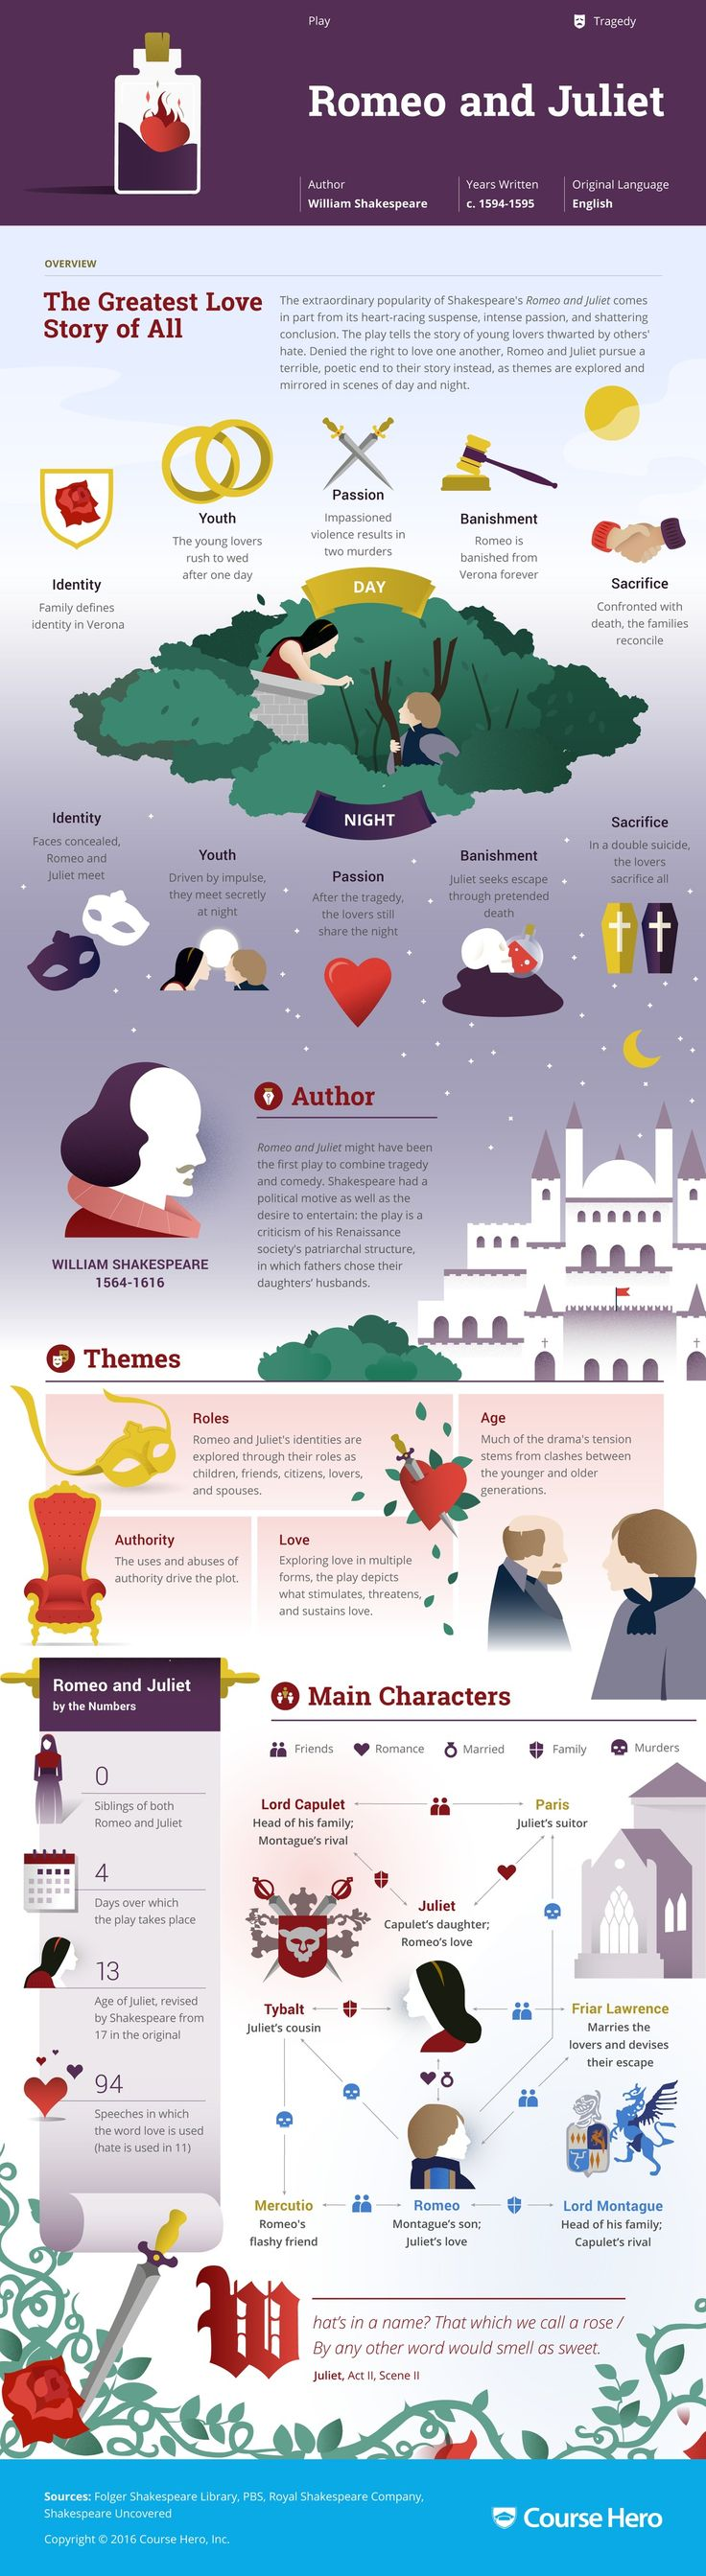 Romeo and Juliet Infographic | Course Hero                              …